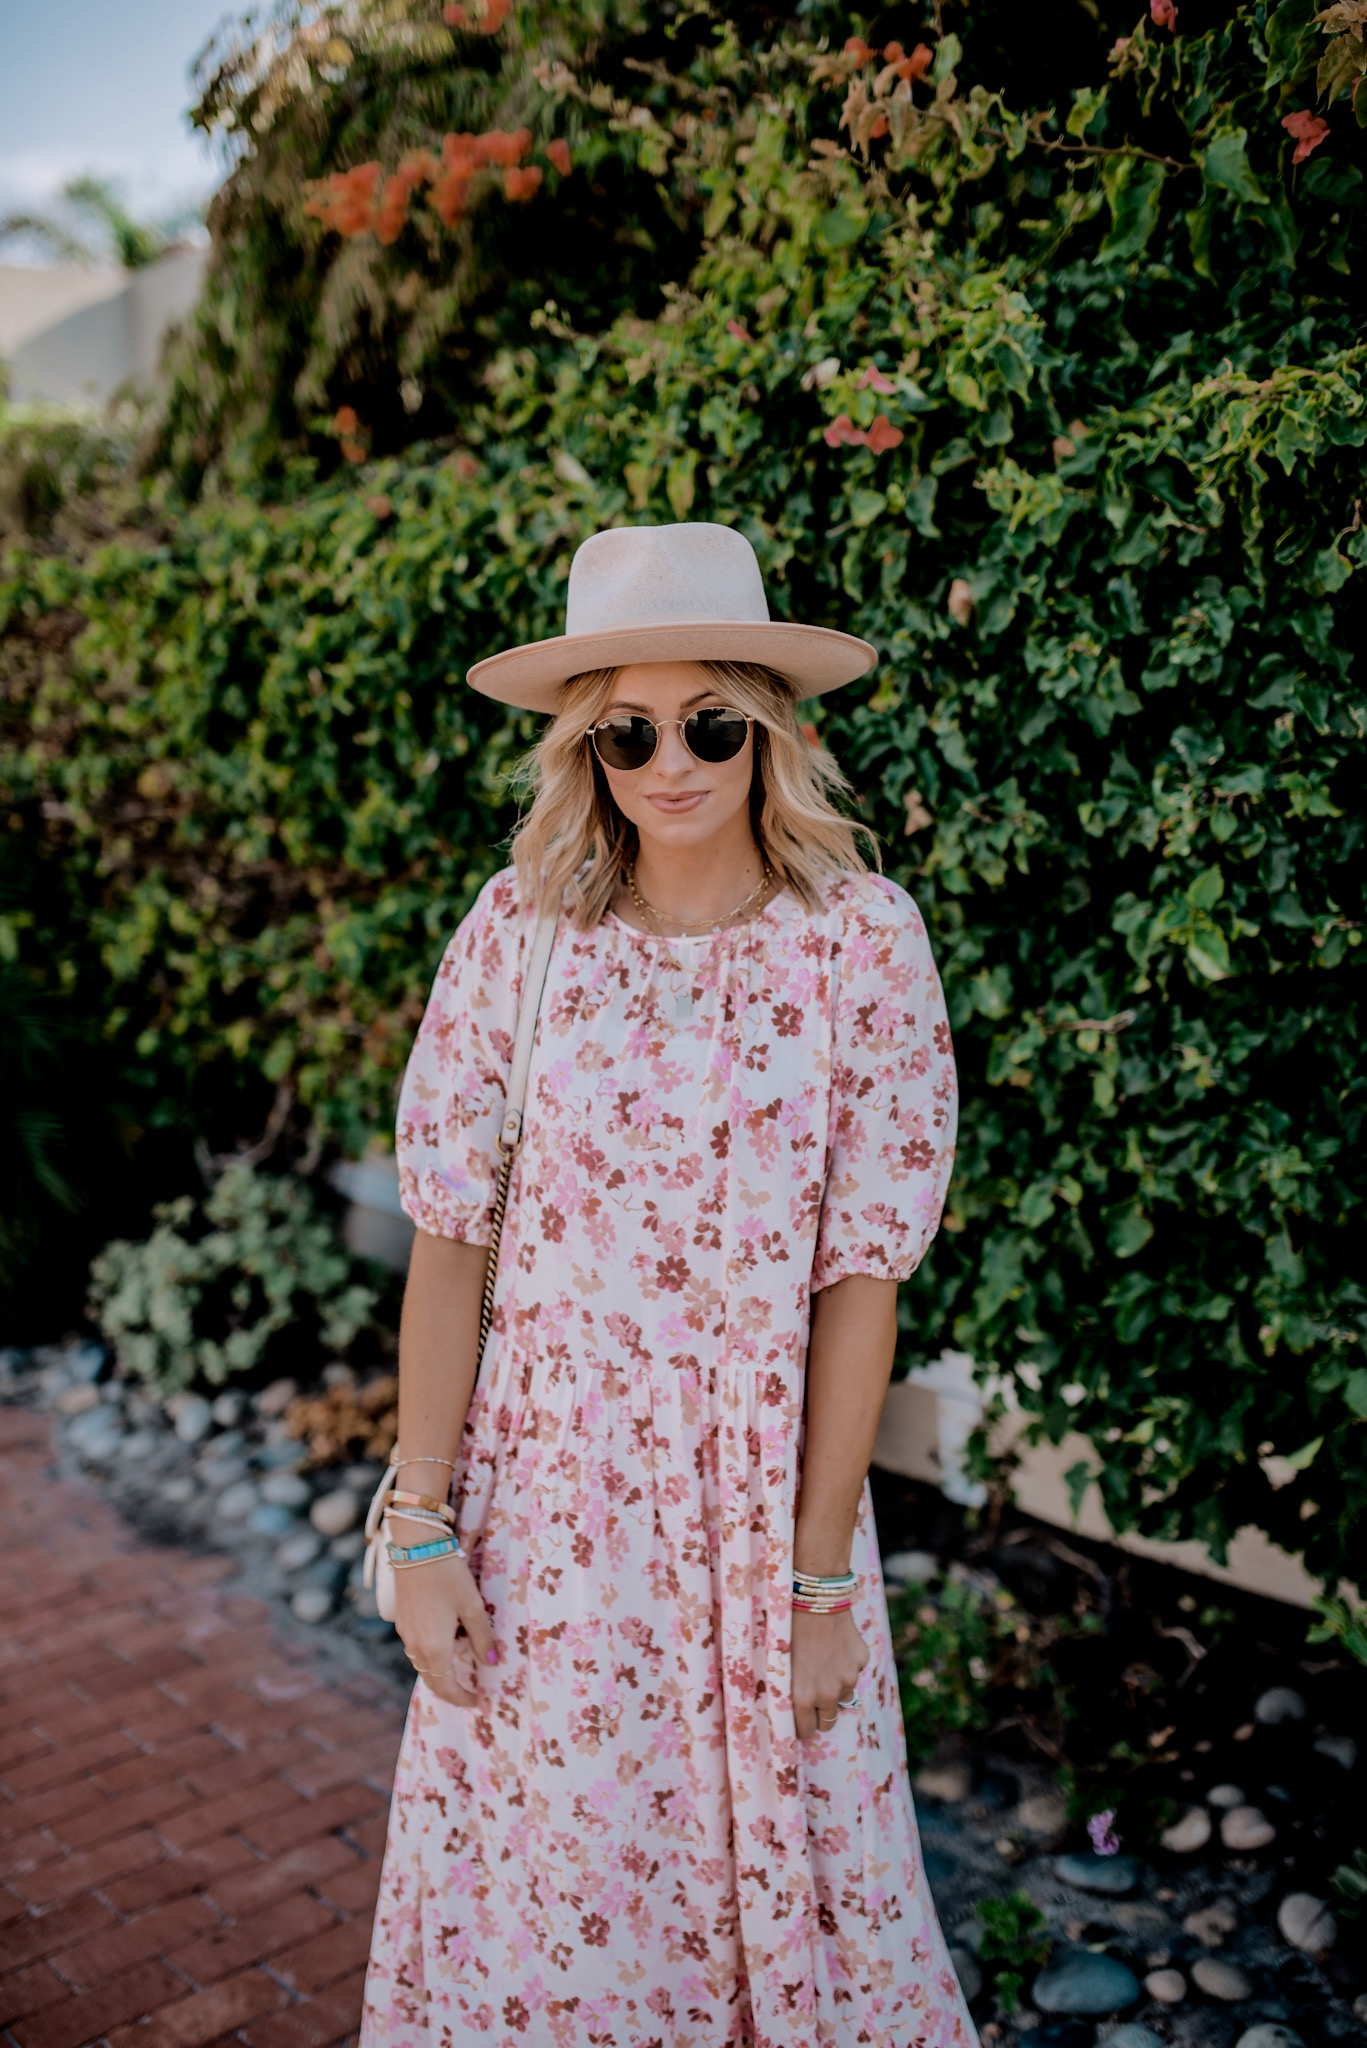 Gold Jewelry by popular San Diego fashion blog, Navy Grace: image of a woman standing outside and wearing a H&M Calf-length Dress, Gigi Pip MONROE RANCHER, Anthropologie Seychelles Tube Slide Sandals, Nordstrom Small Matelassé Leather Shoulder Bag GUCCI, and Nordstrom Icons 50mm Round Metal Sunglasses RAY-BAN.